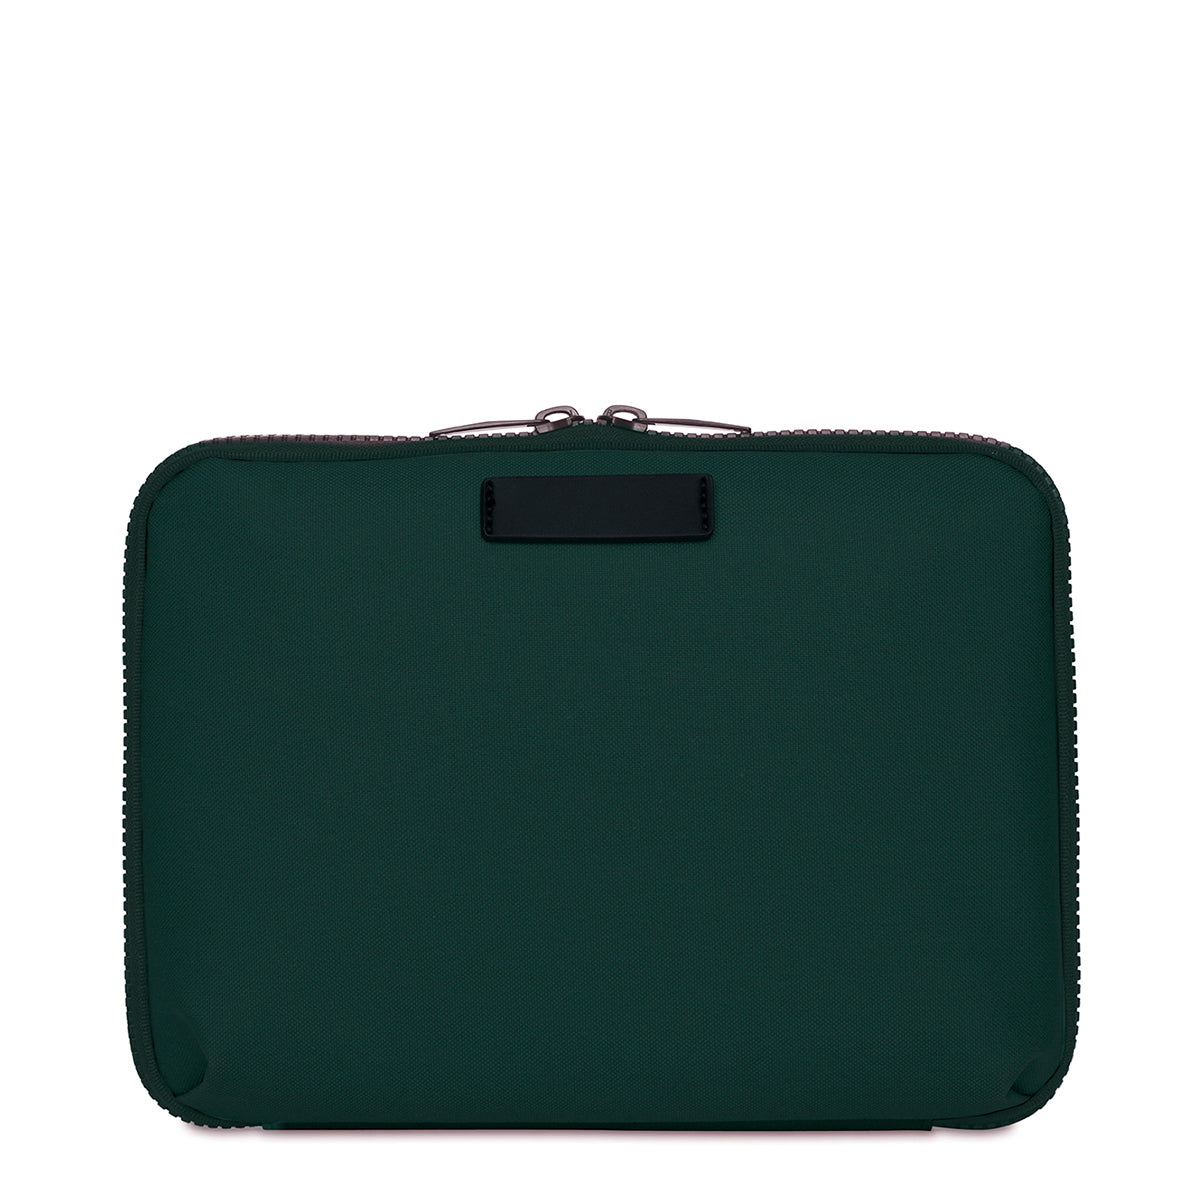 "Thames Knomad organizer - 13"" Tech Organizer for Work -  